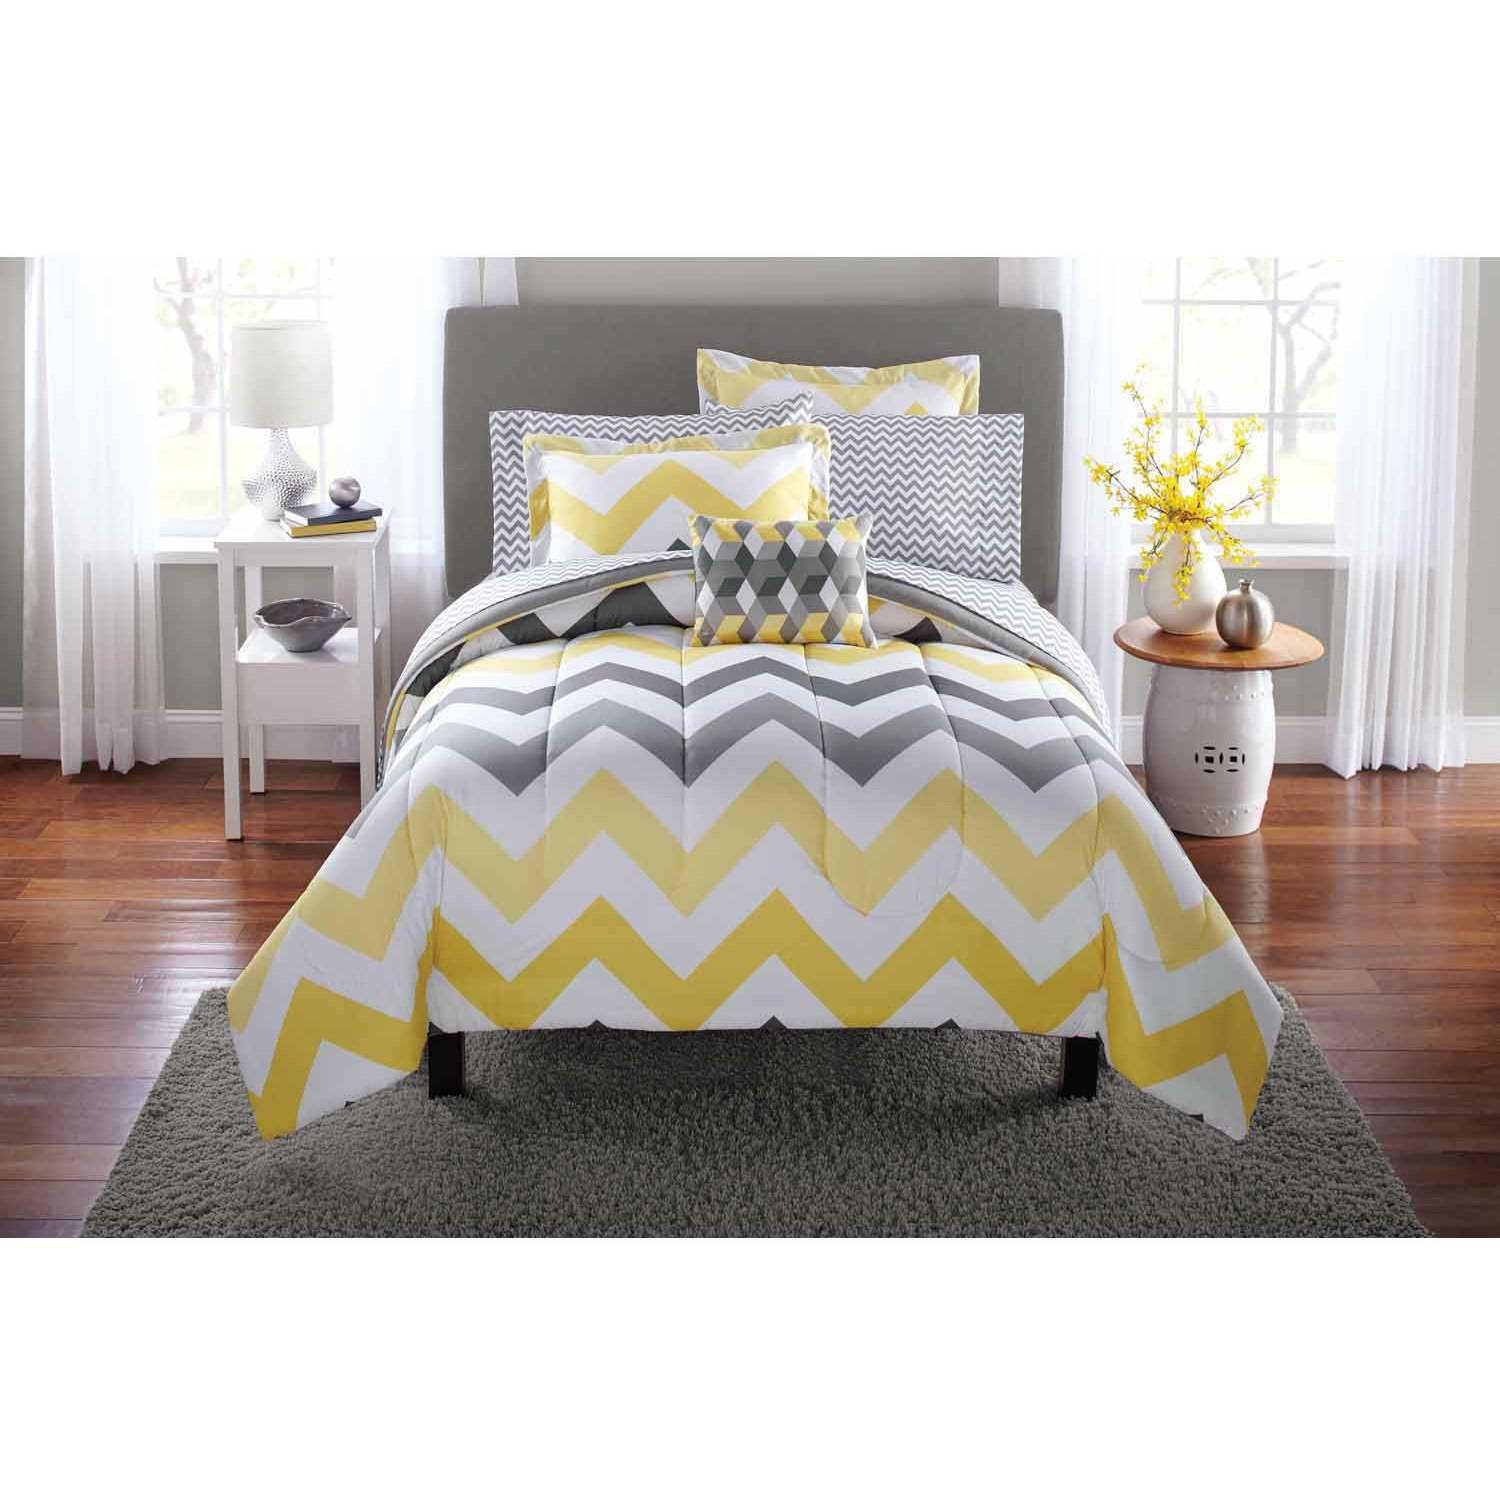 Mainstays Yellow Grey Chevron Bed In A Bag Bedding Walmart Com